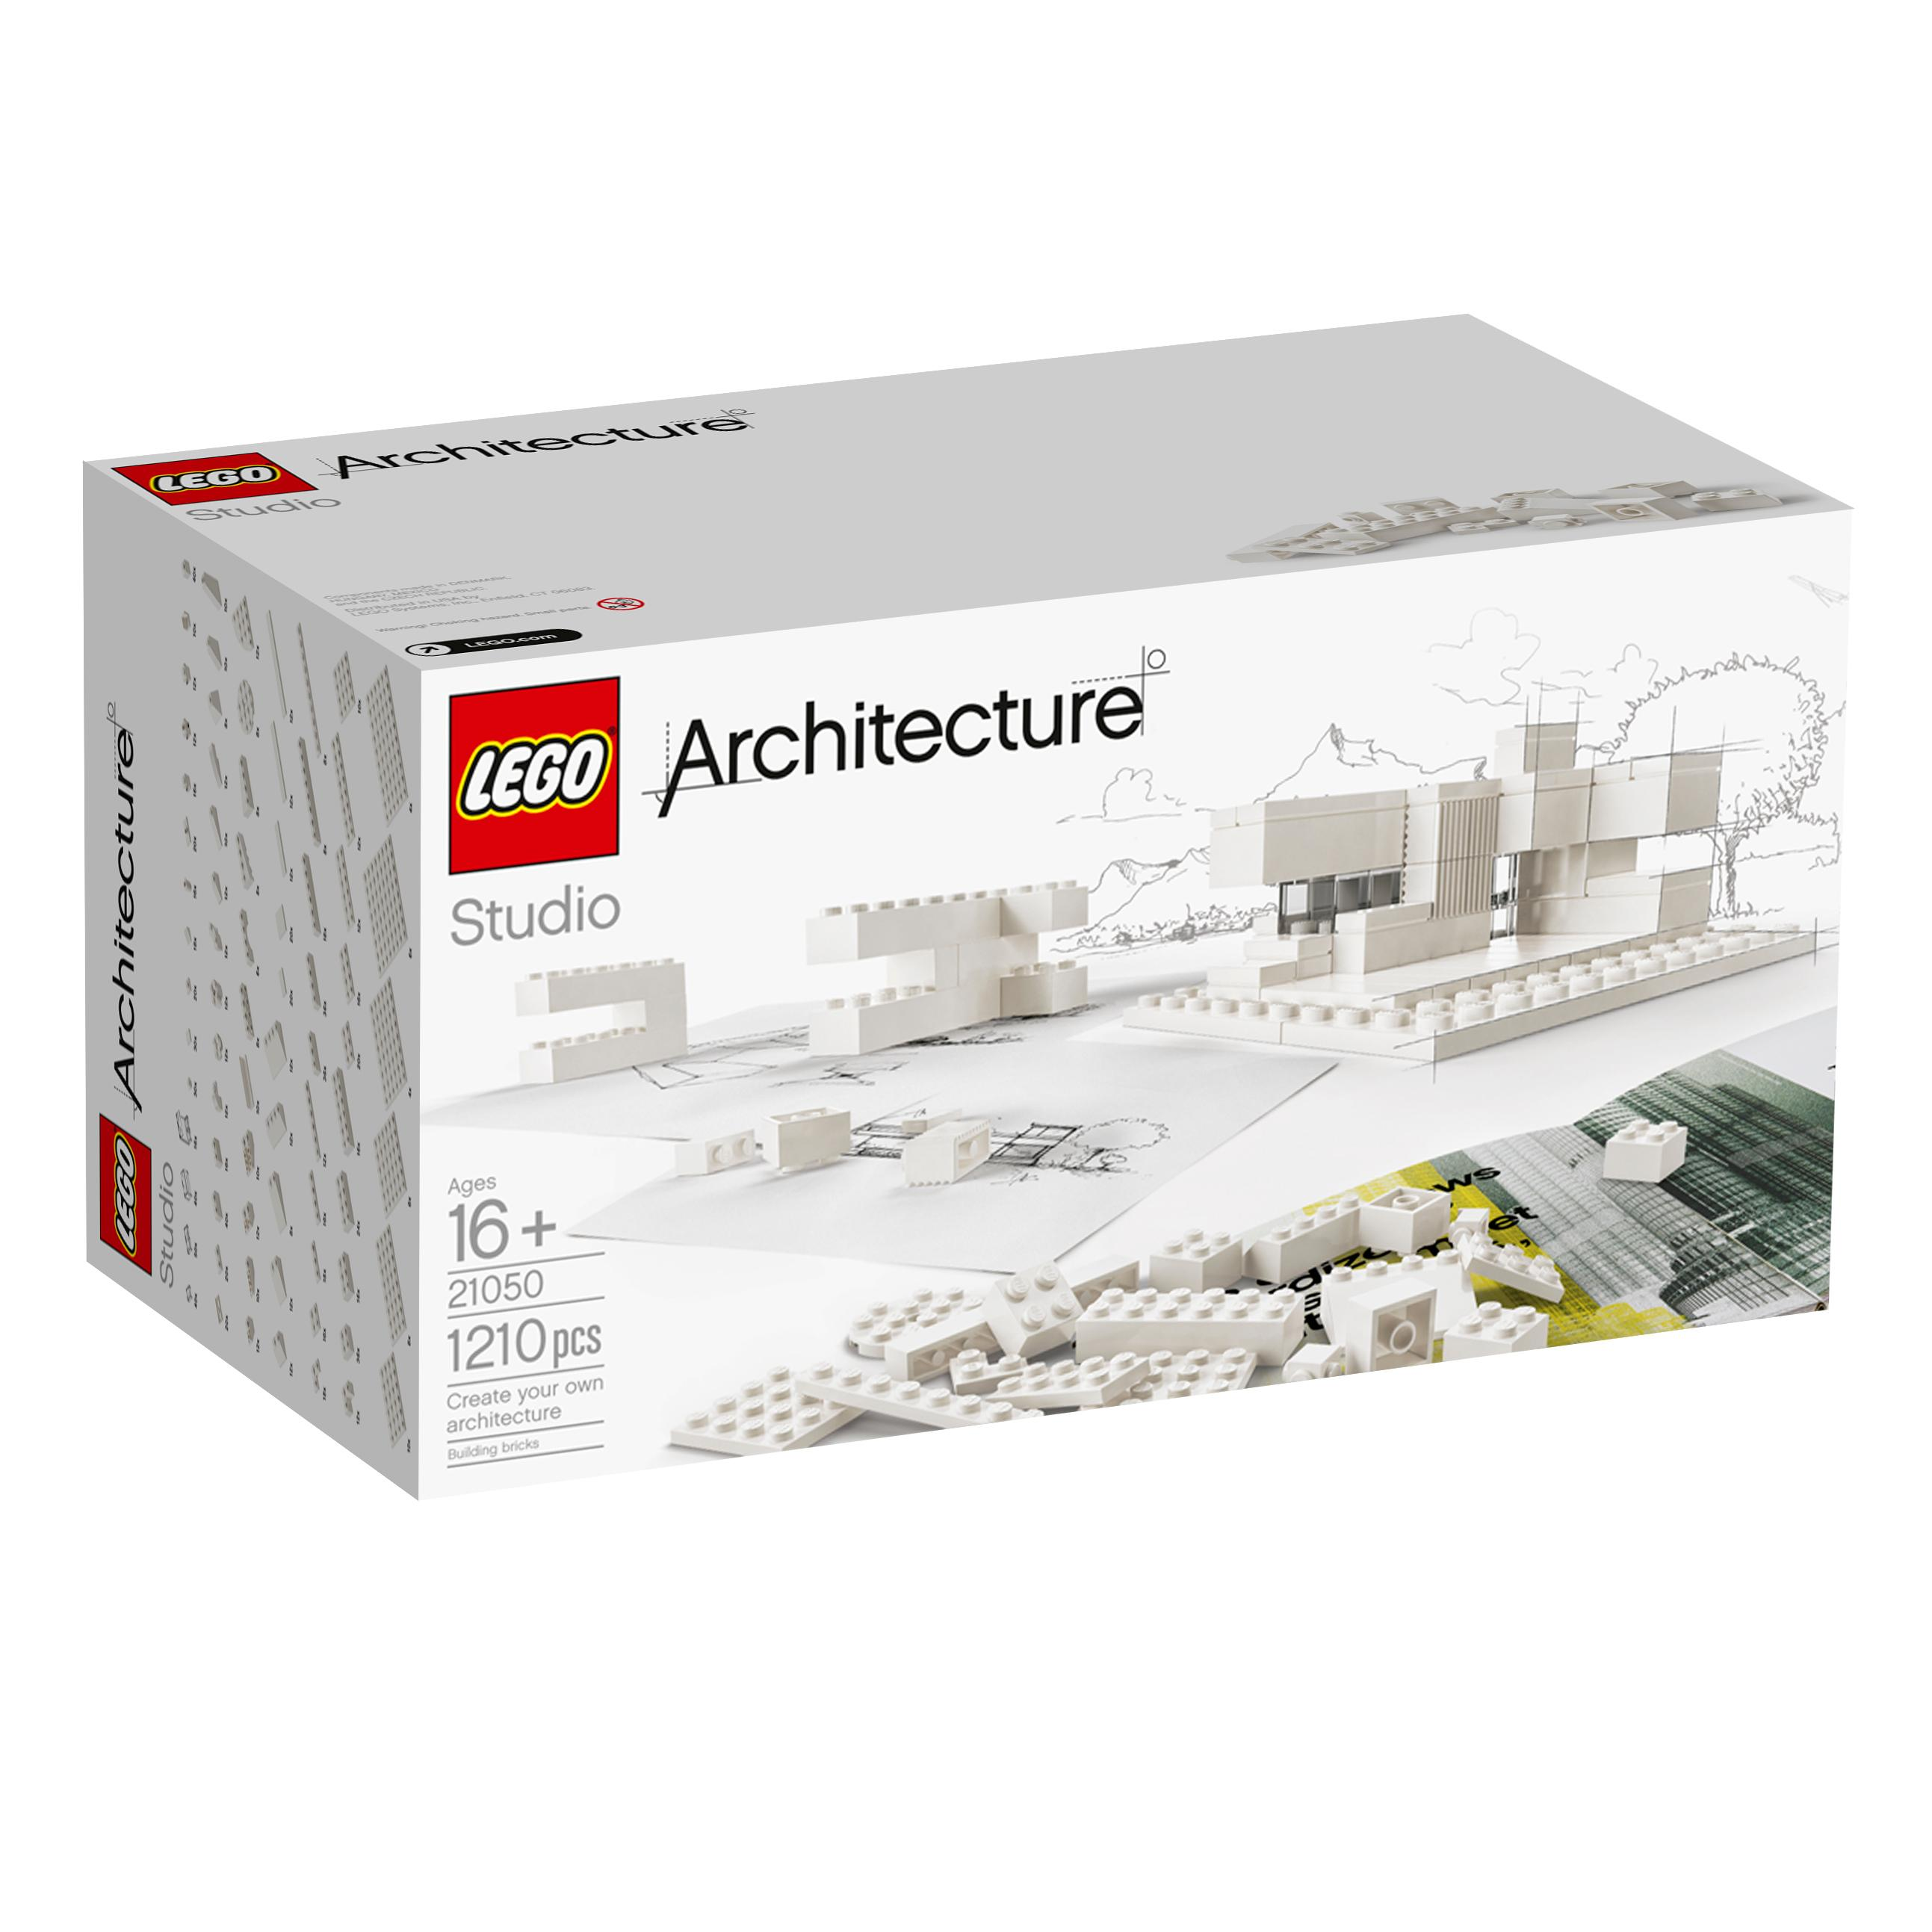 lego architecture studio 21050 instructions